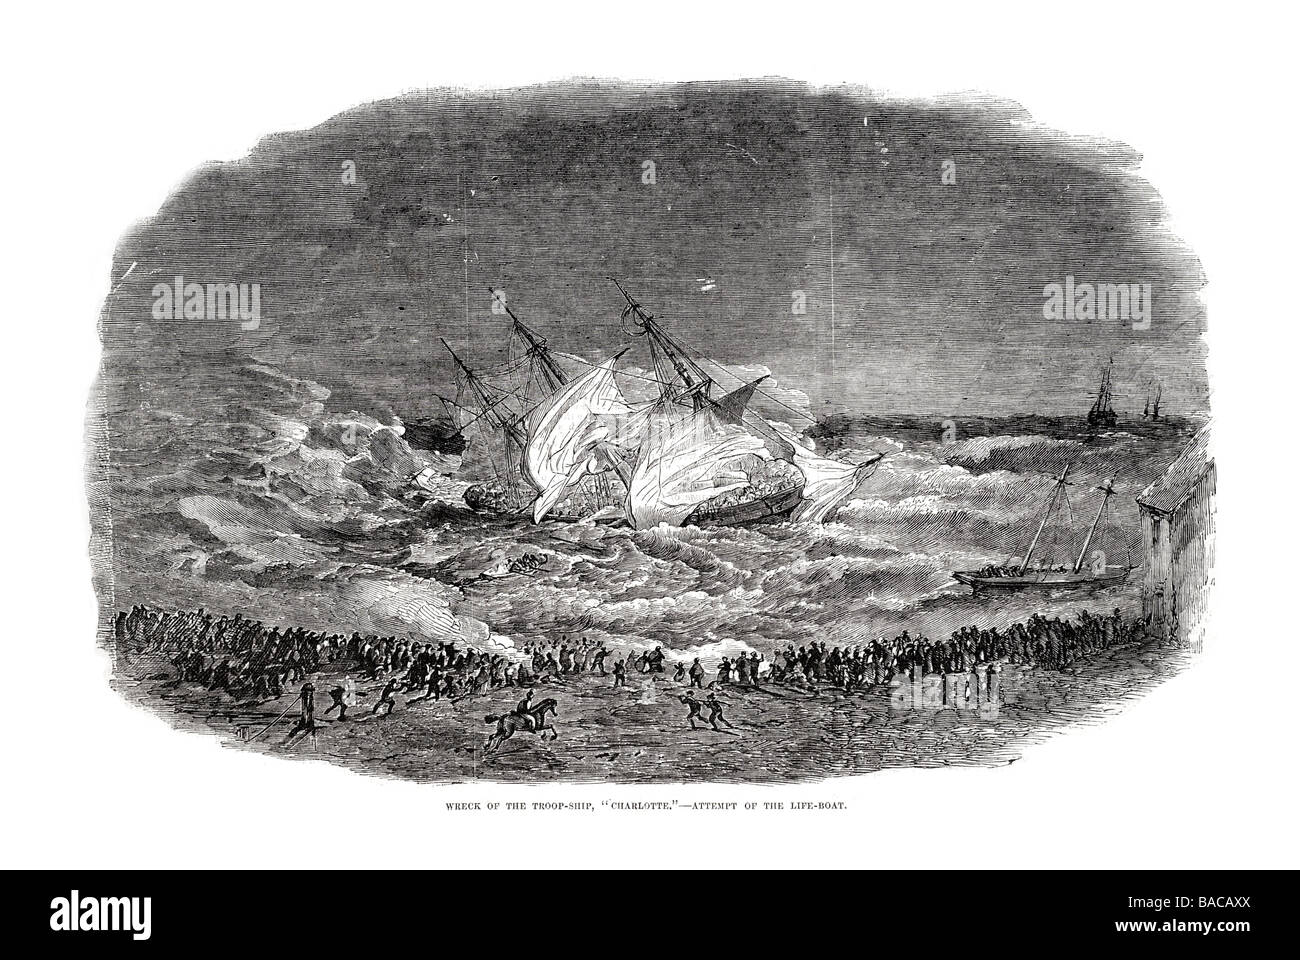 wreck of the troop ship charlotte algoa bay attemp of the life boat 1854 - Stock Image